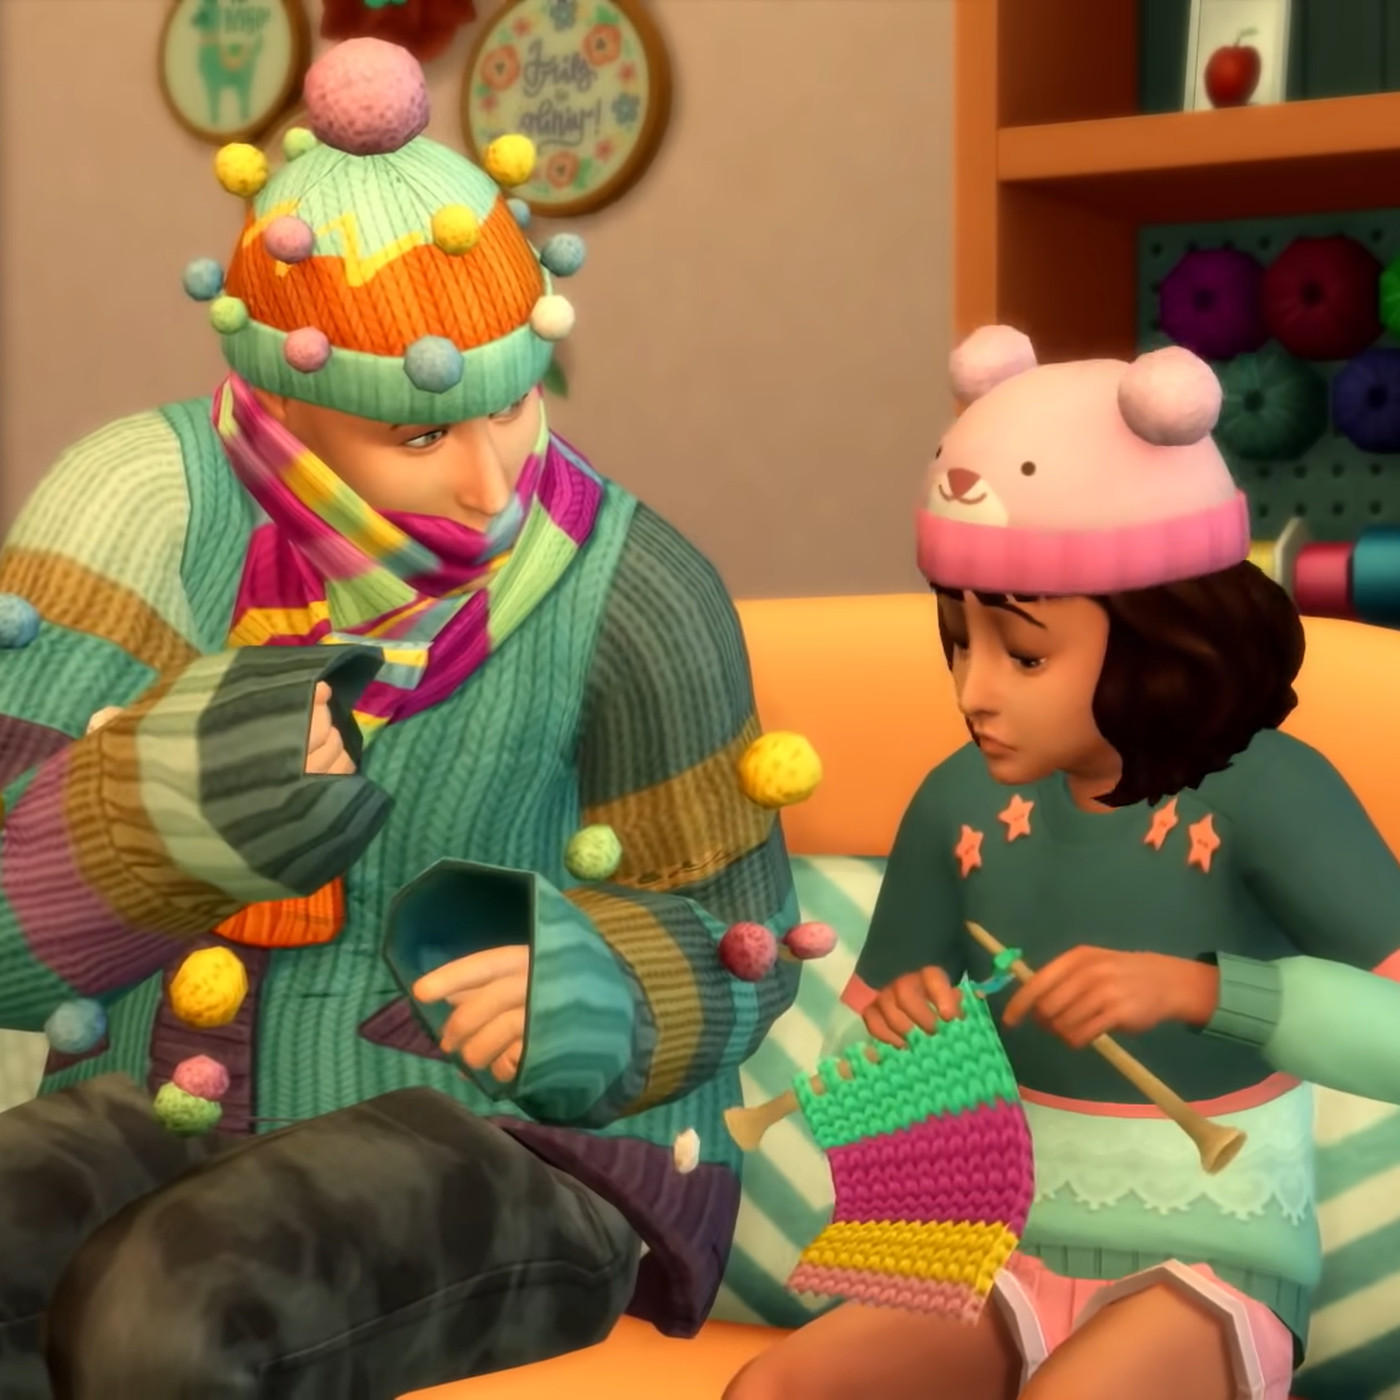 The Sims 4 Nifty Knitting S Knitting Animation Reviewed Polygon